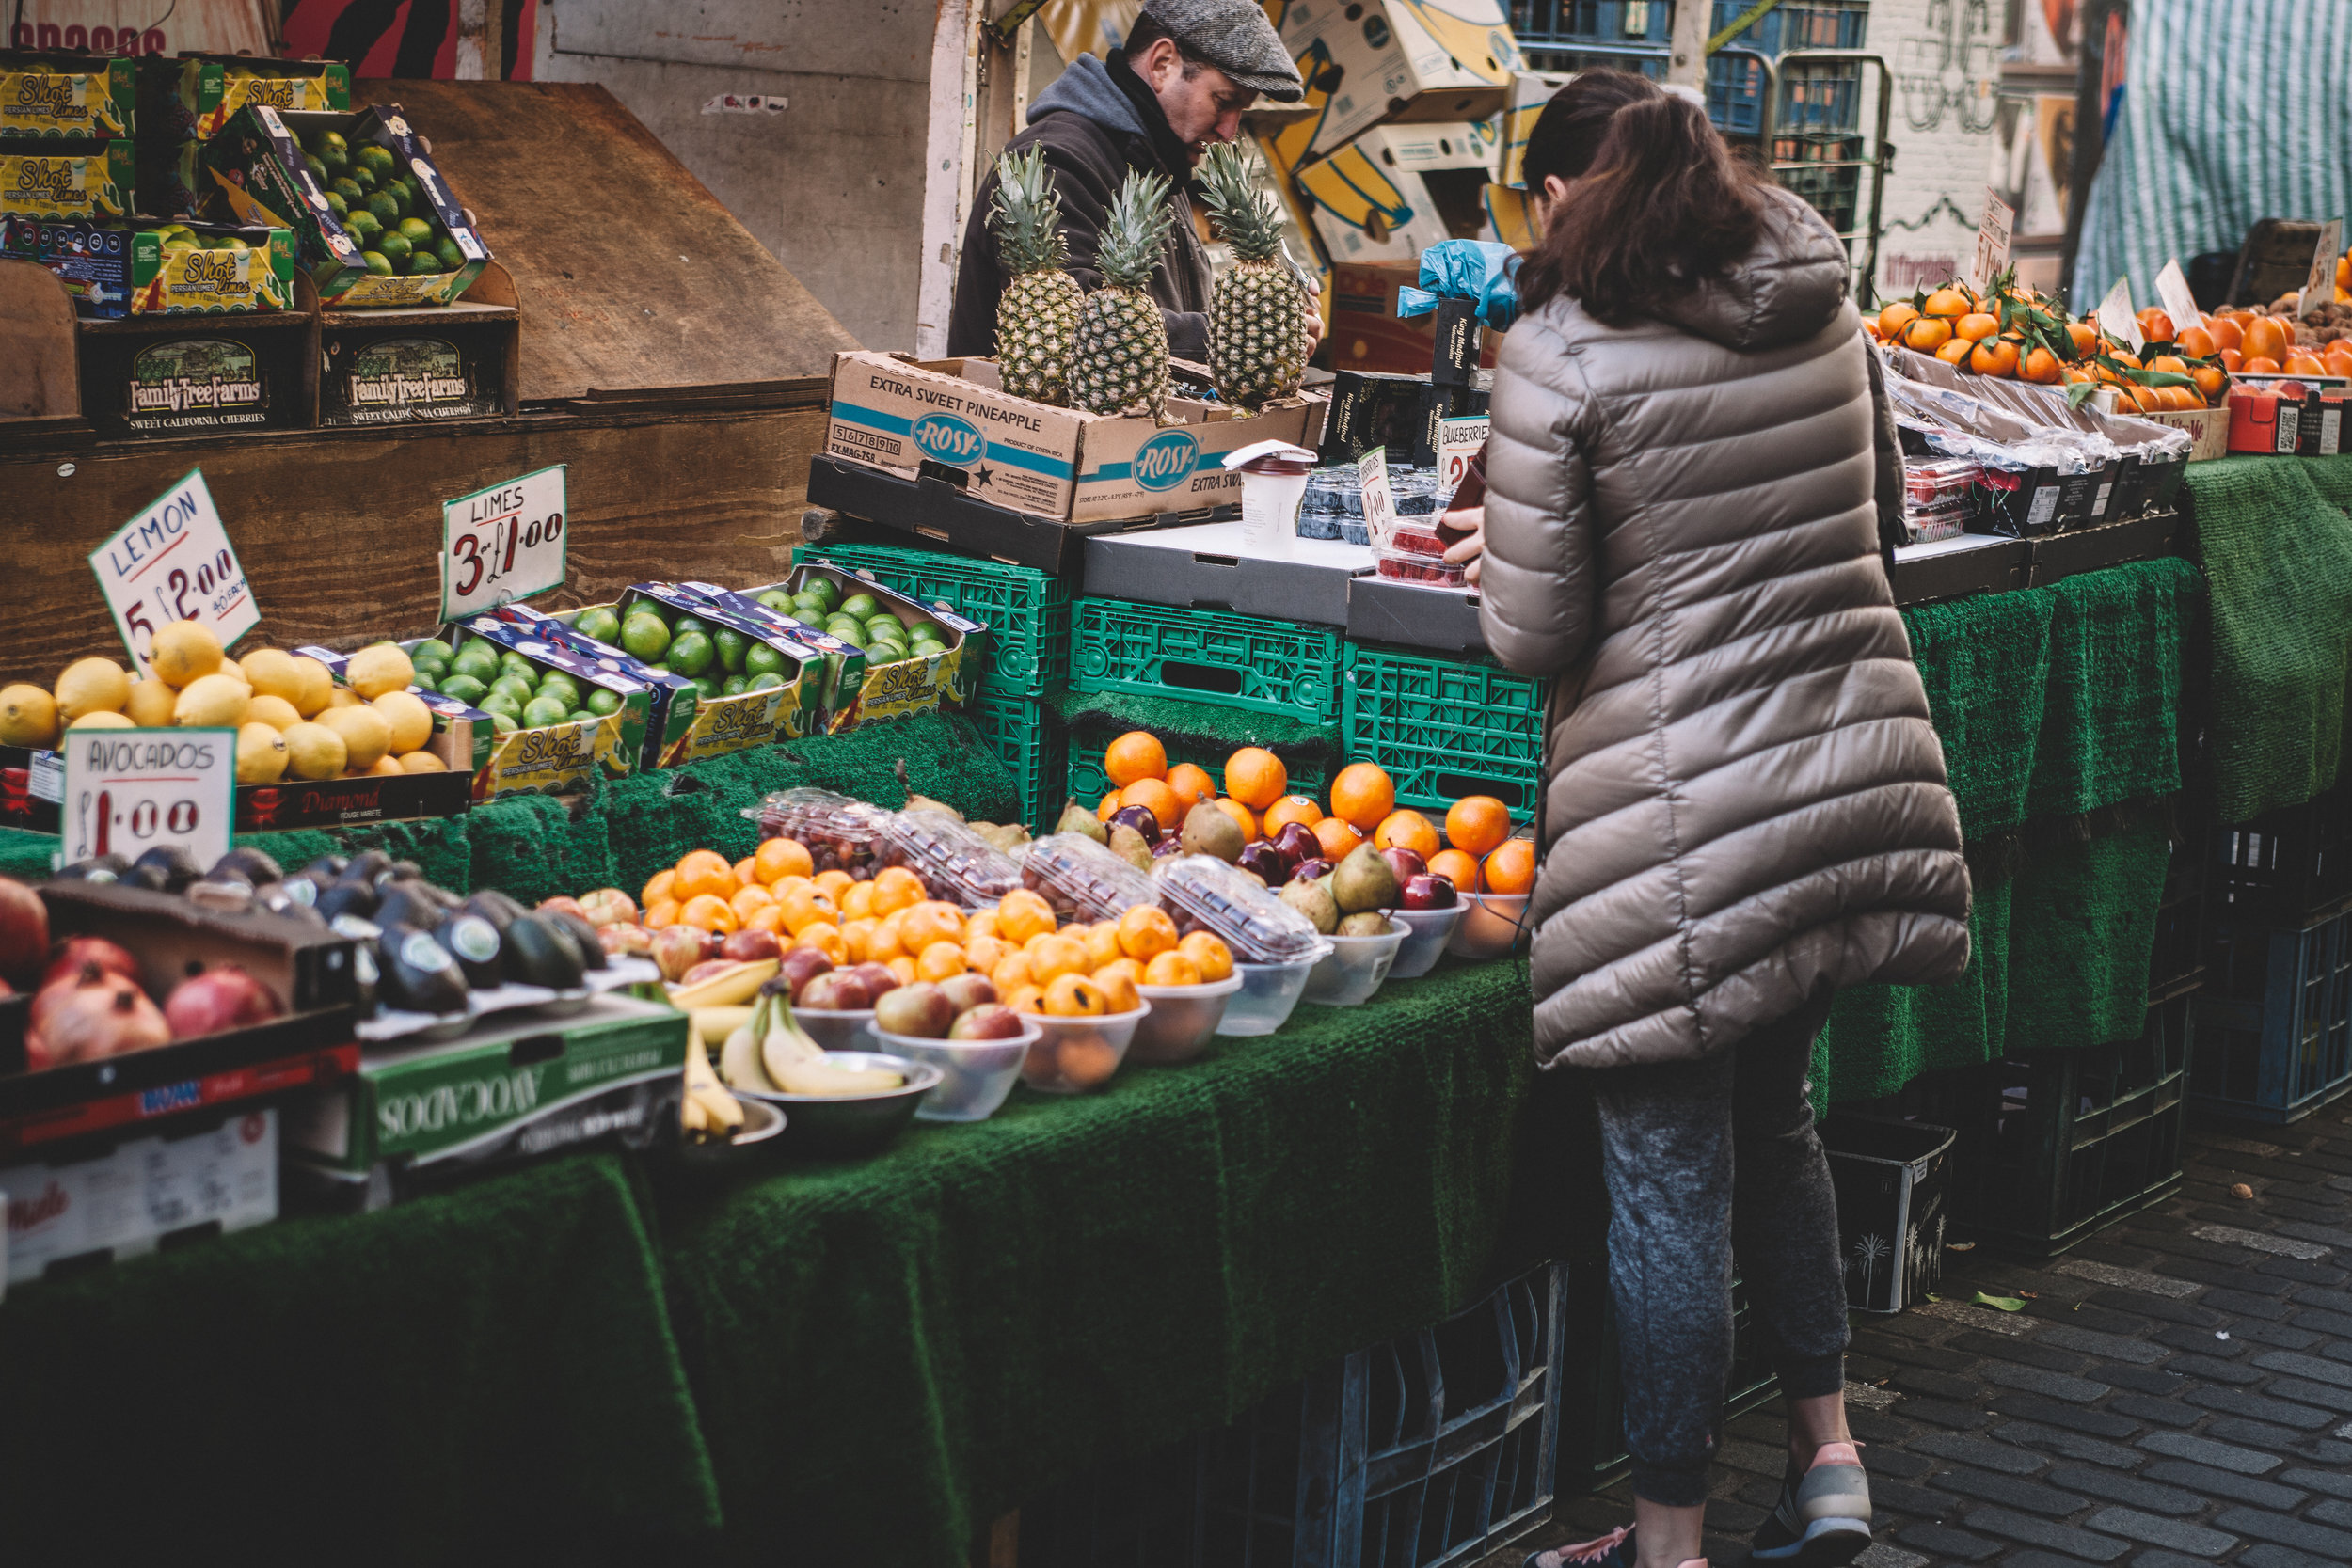 You don't have to shop at your local market to be green and eco-friendly. Focus on buying fresh local produce that's in season or is labelled with a fair-trade certification. Write a list, order online and don't forget that bag for life!